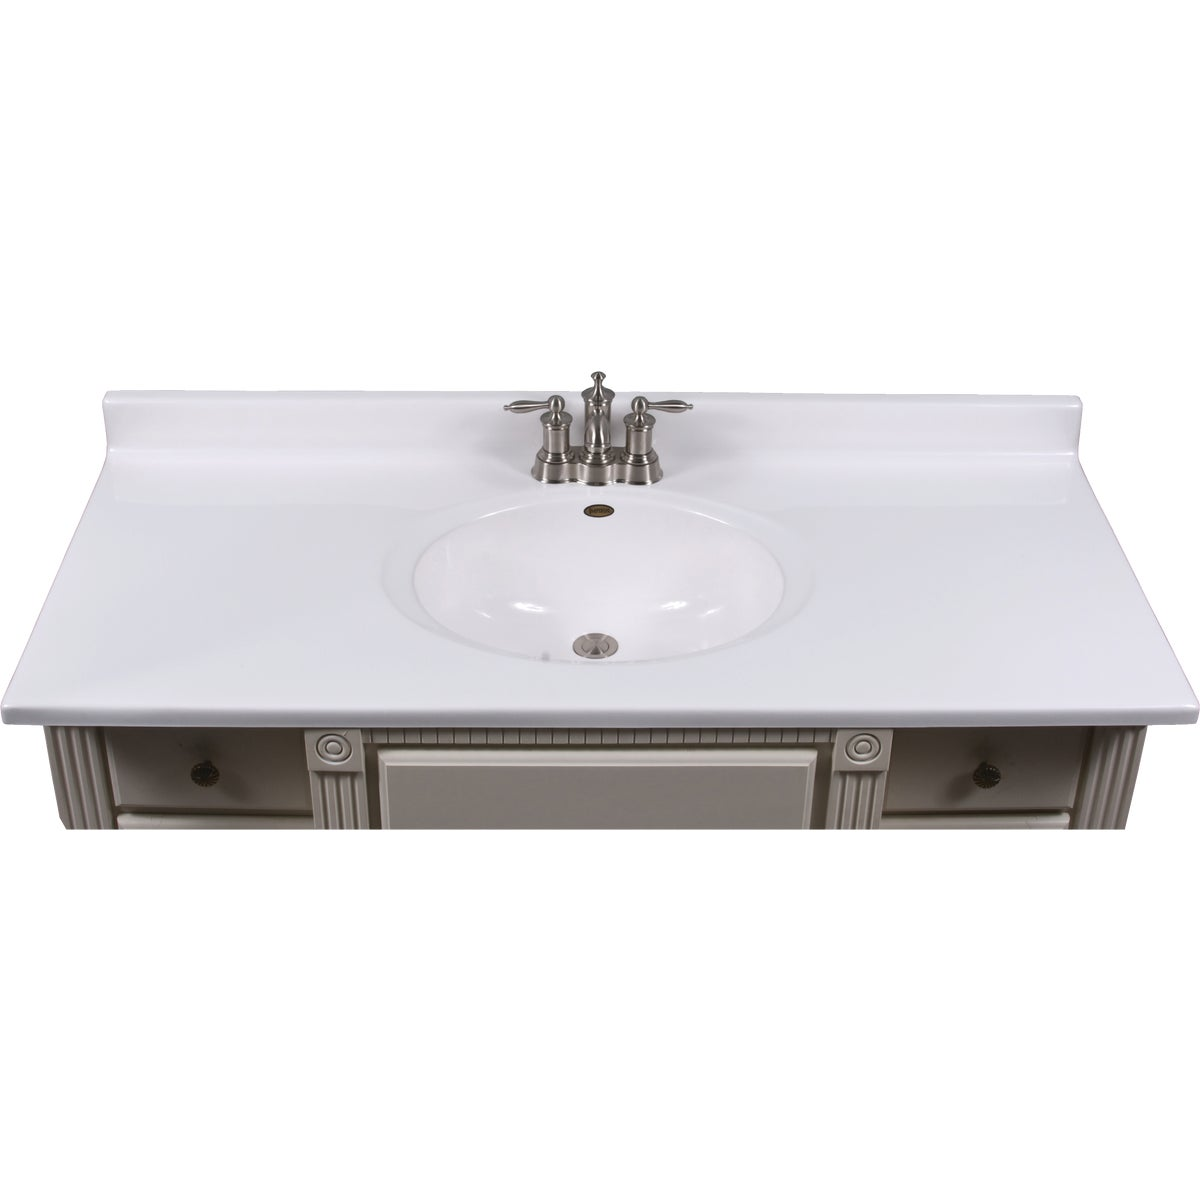 49X22 WHT VANITY TOP - VC4922SPW by Imperial Marble Corp